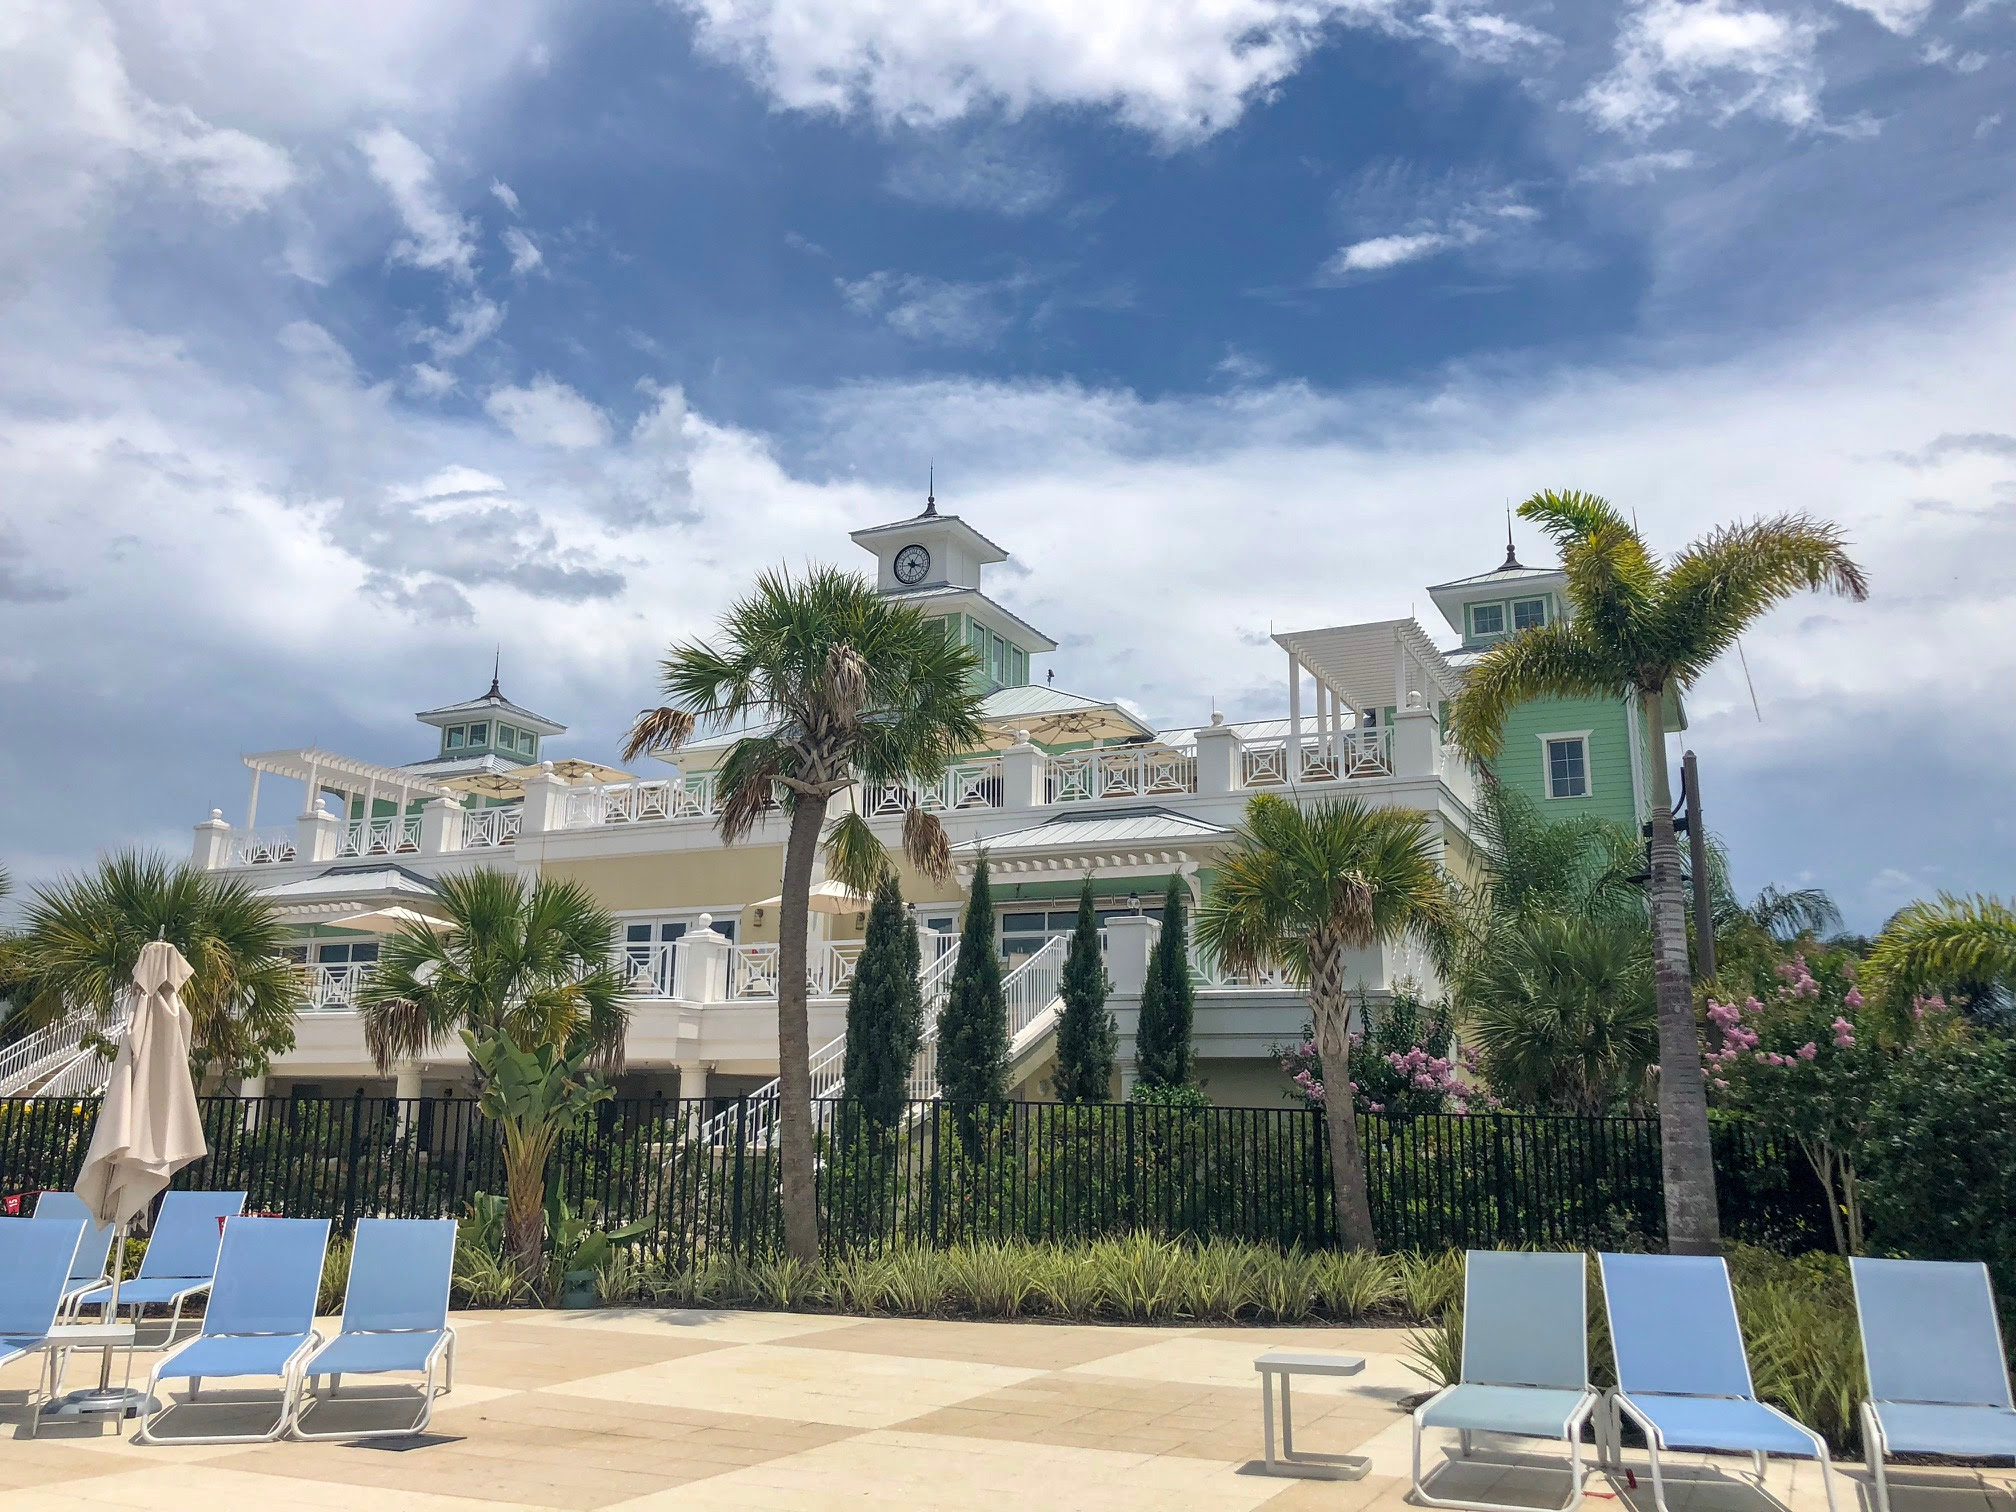 Our Stay At Encore Resort At Reunion In Orlando FL